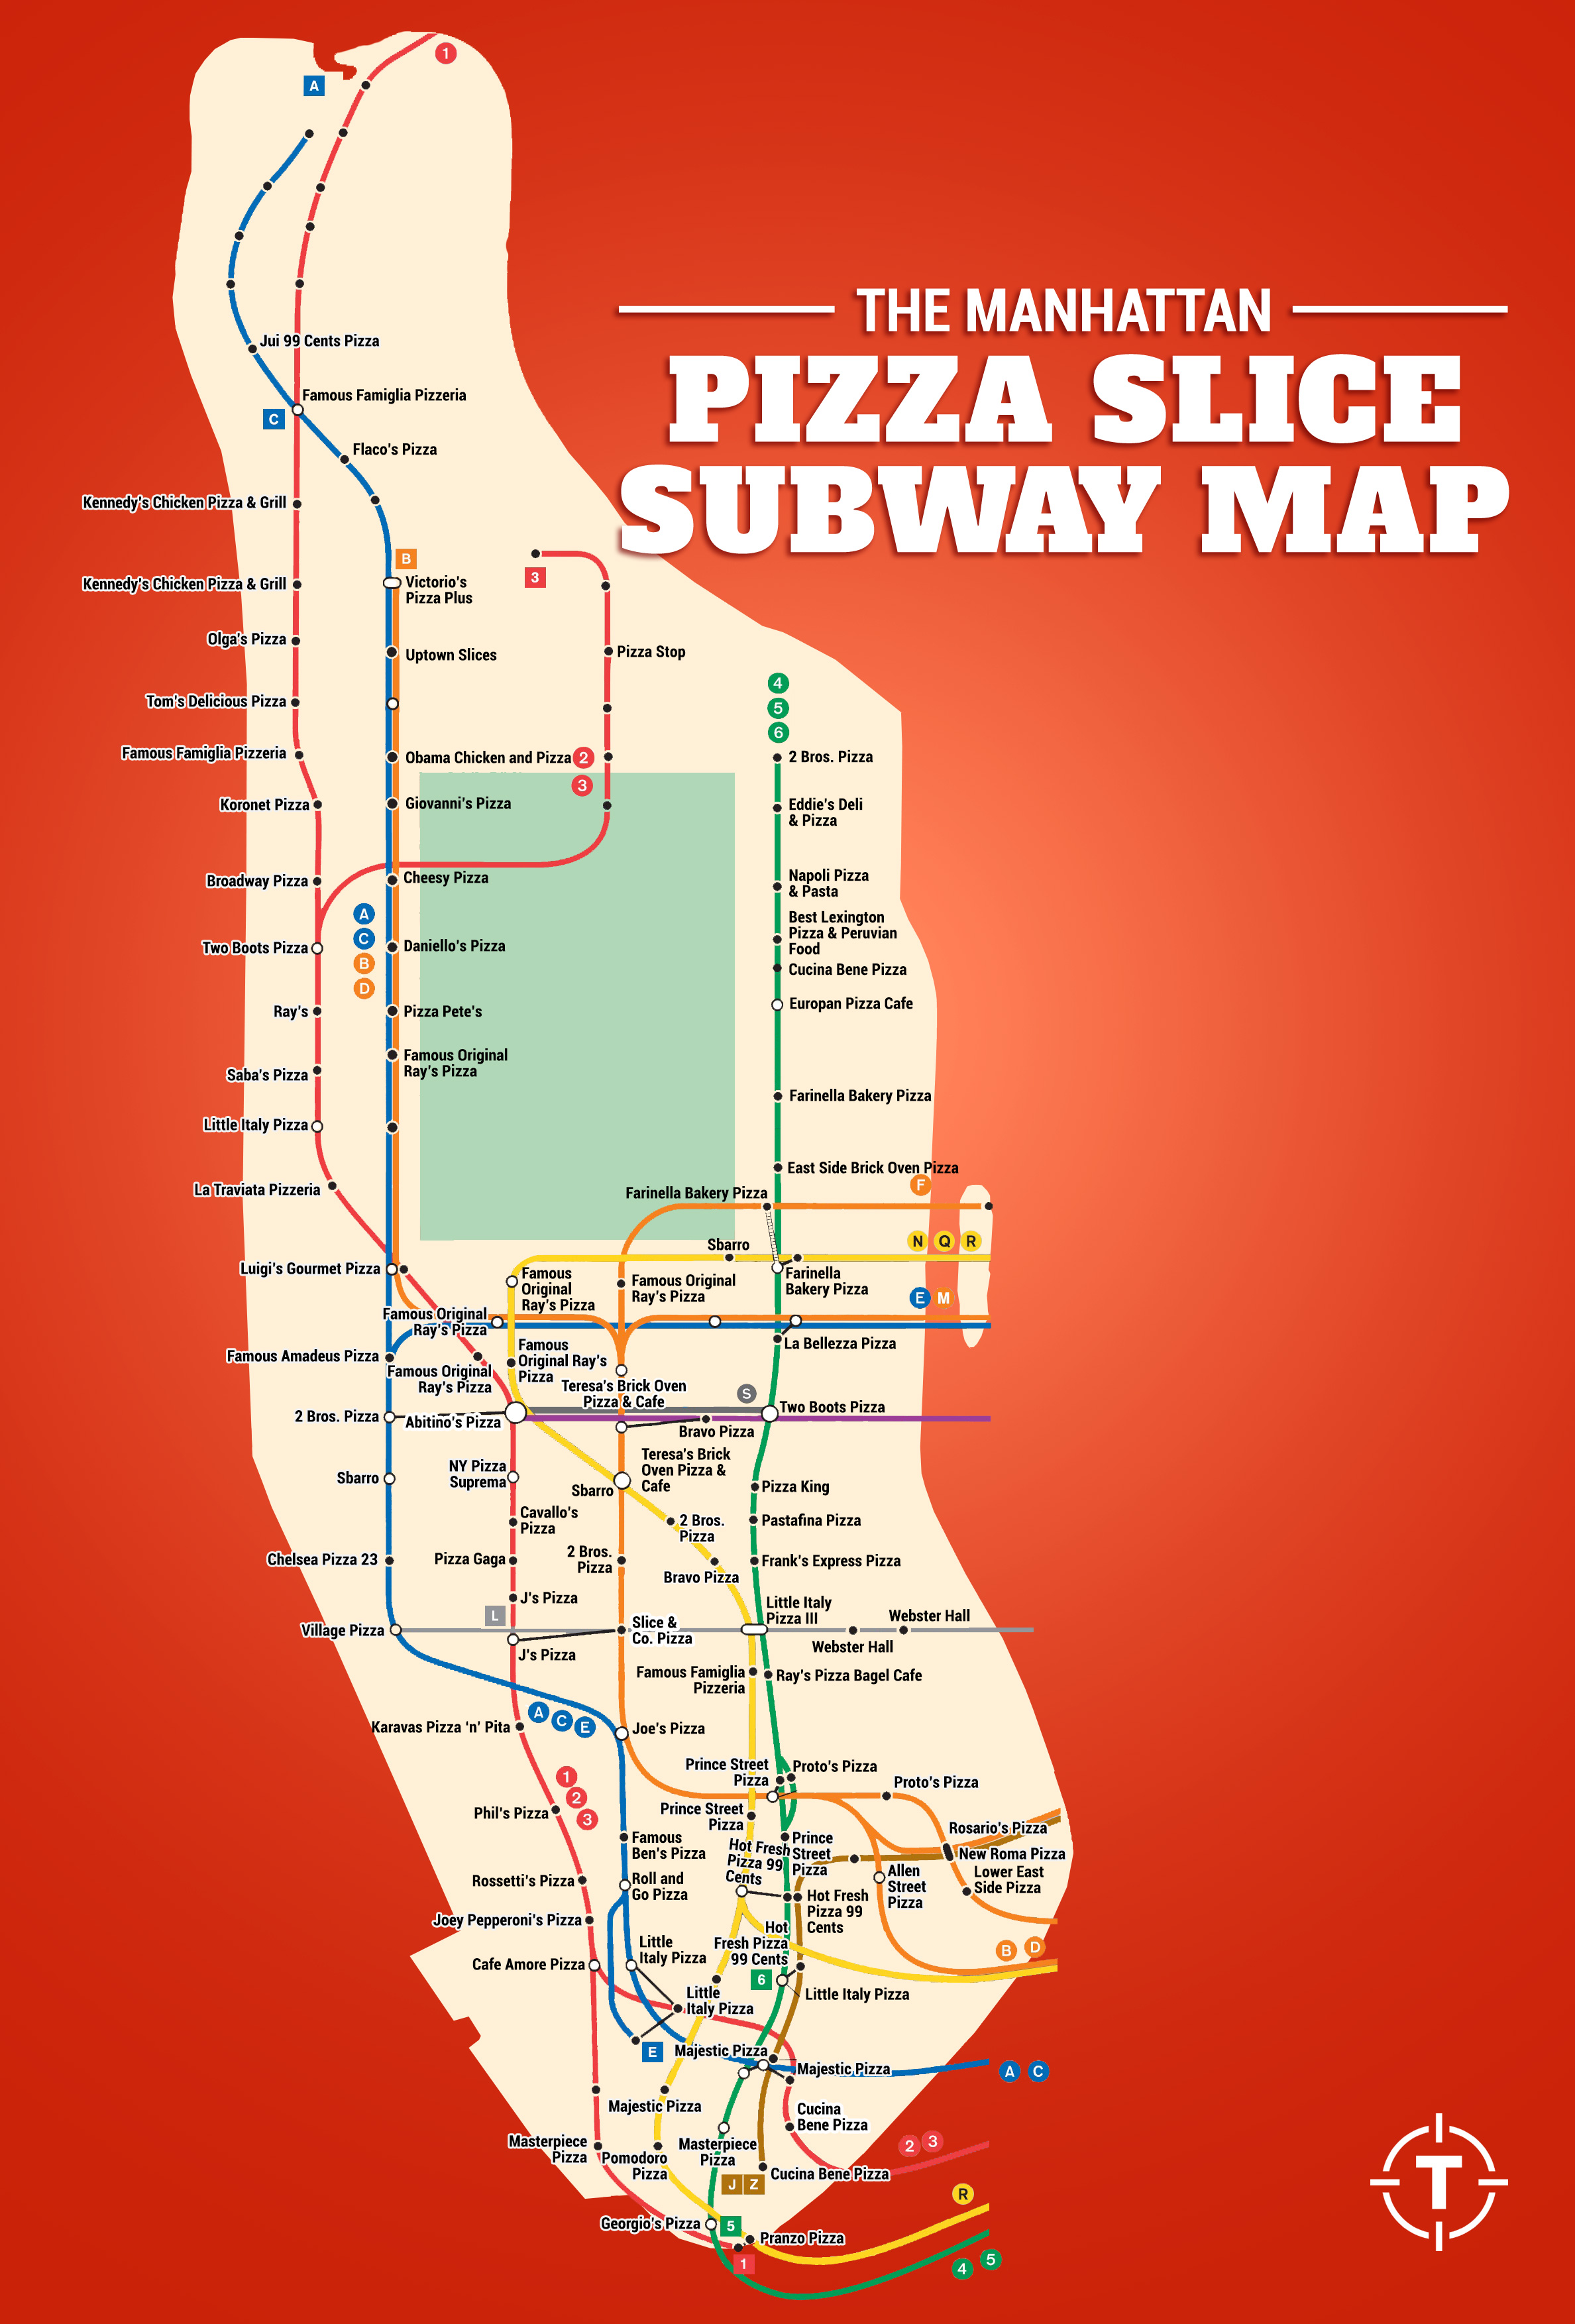 Check Out This Incredible Manhattan Pizza Subway Map